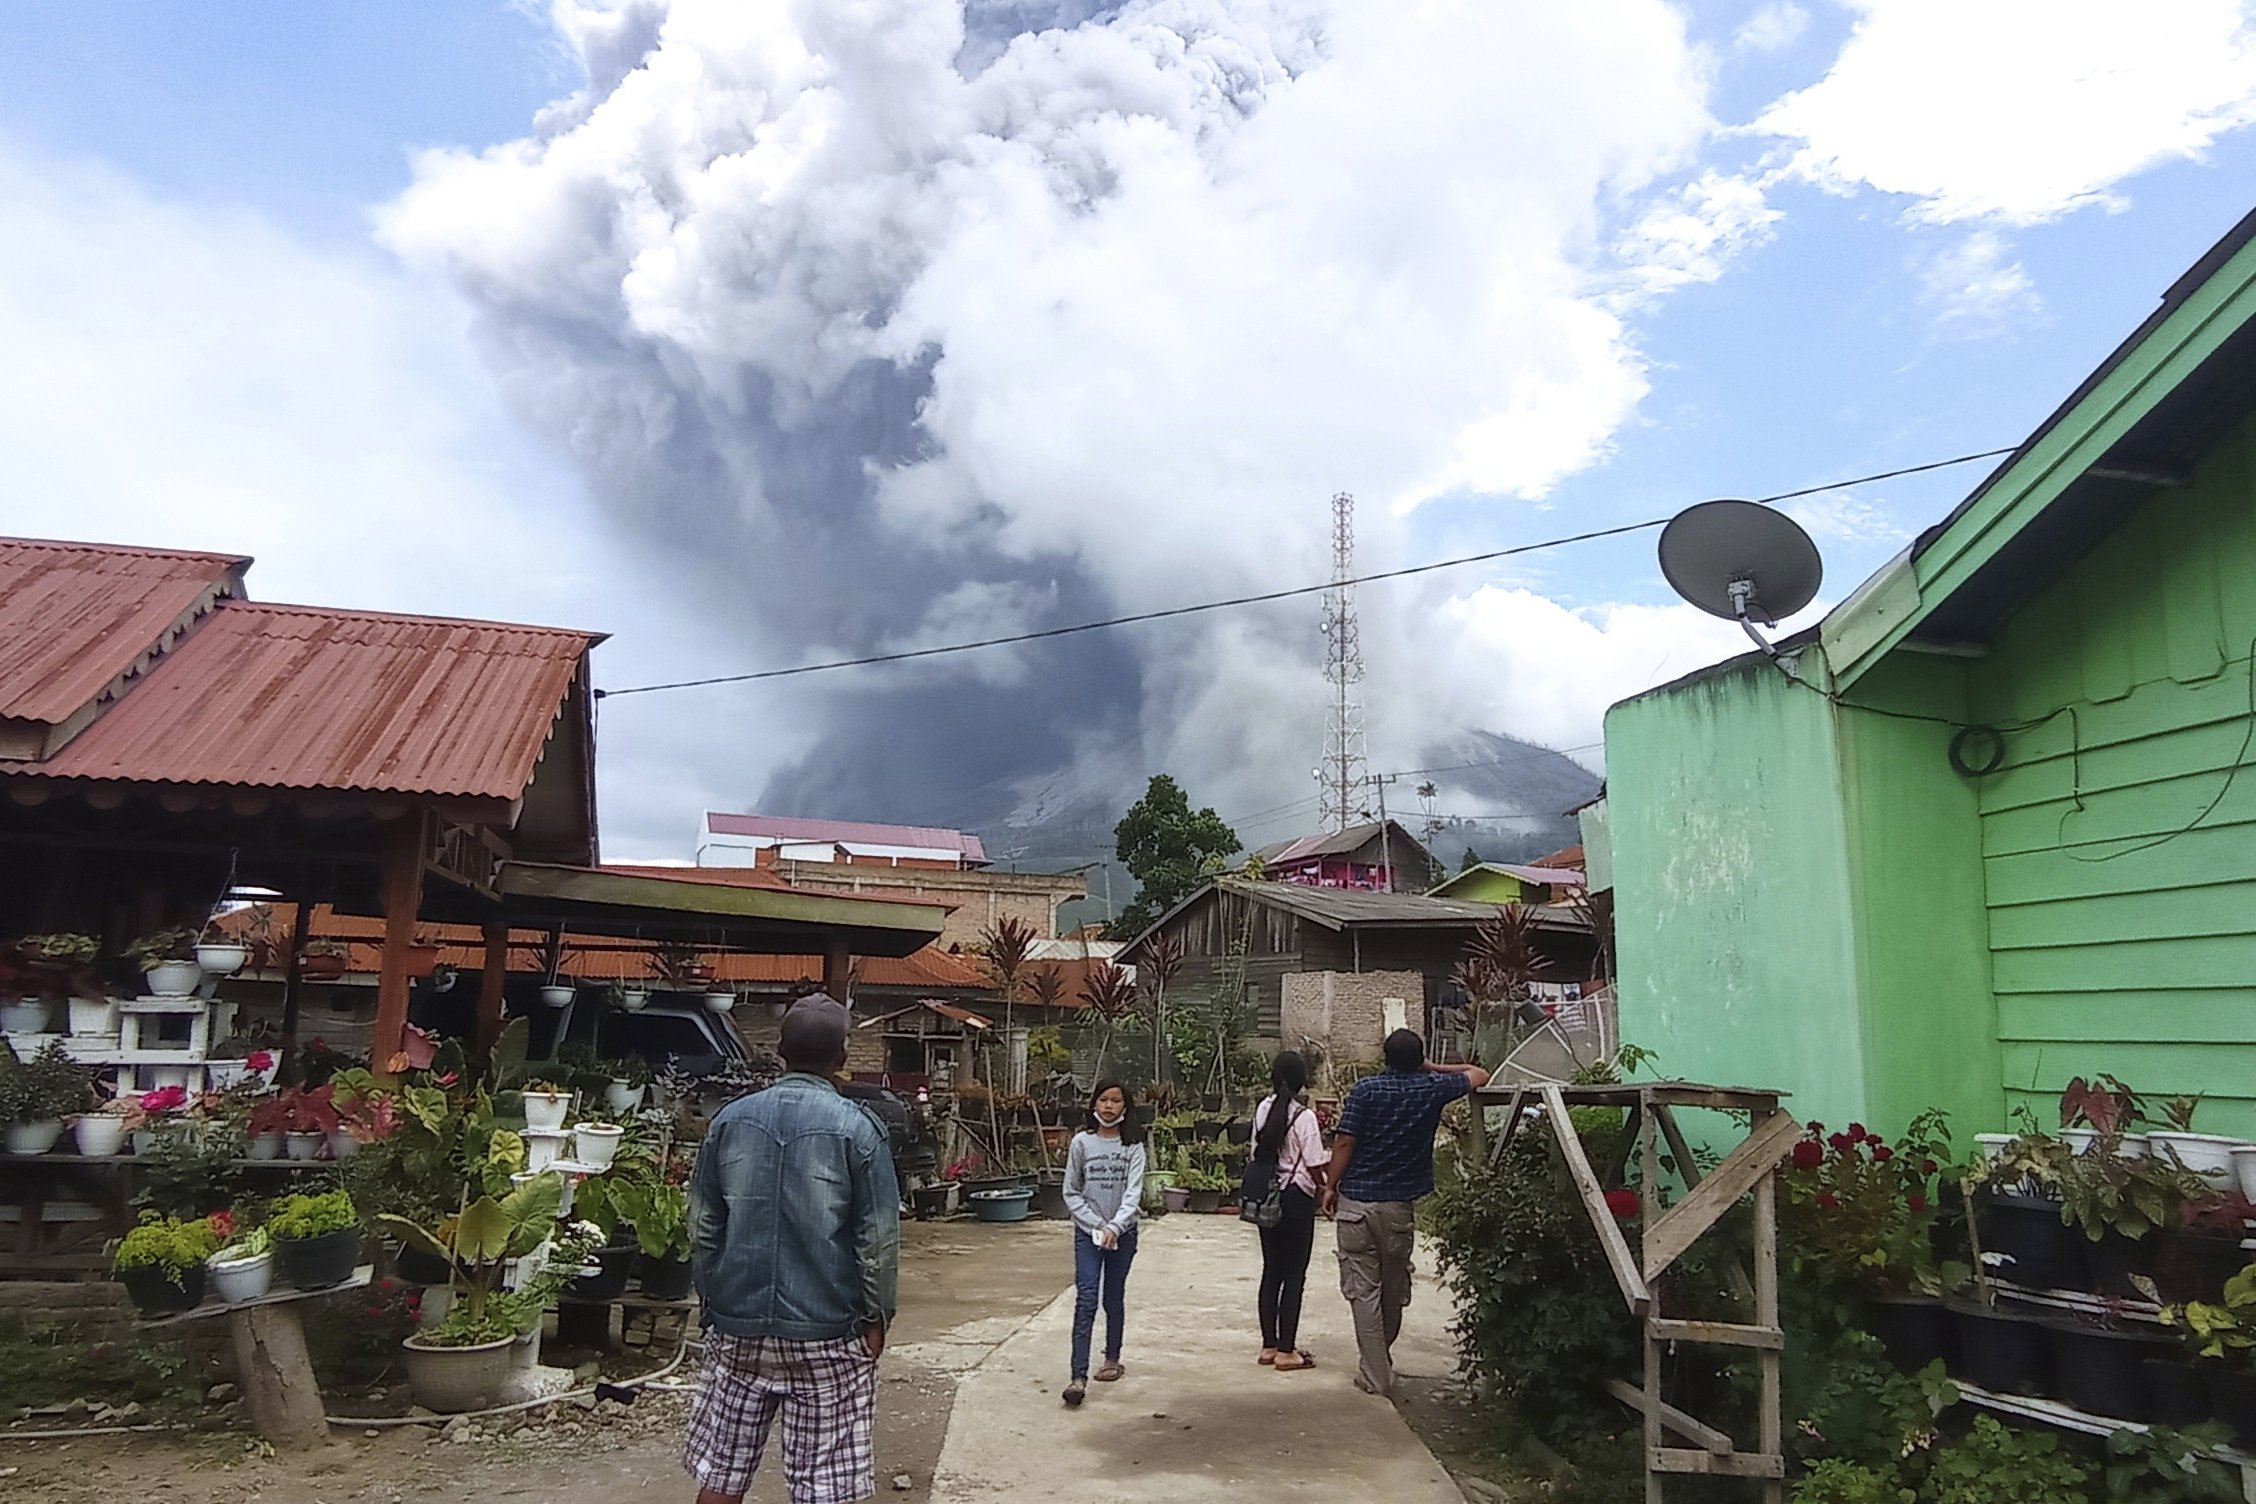 People watch as Mount Sinabung spews volcanic materials during an eruption in Karo, North Sumatra, Indonesia, July 28, 2021. (AP Photo)